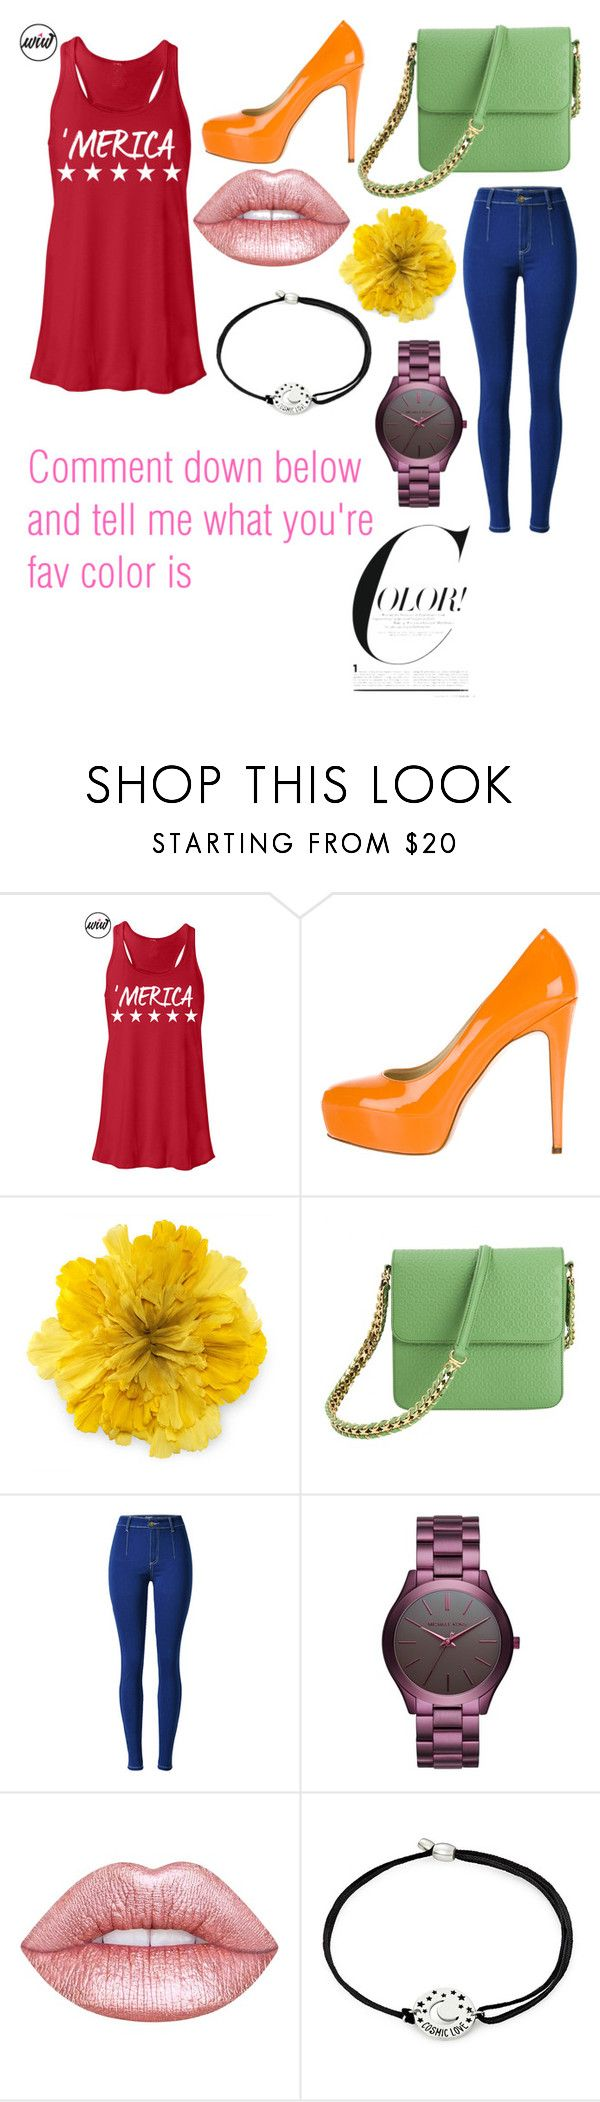 """""""What's Ure Fav Color???"""" by ashleyannmcd ❤ liked on Polyvore featuring Brian Atwood, Gucci, STELLA McCARTNEY, Michael Kors, Lime Crime and Alex and Ani"""